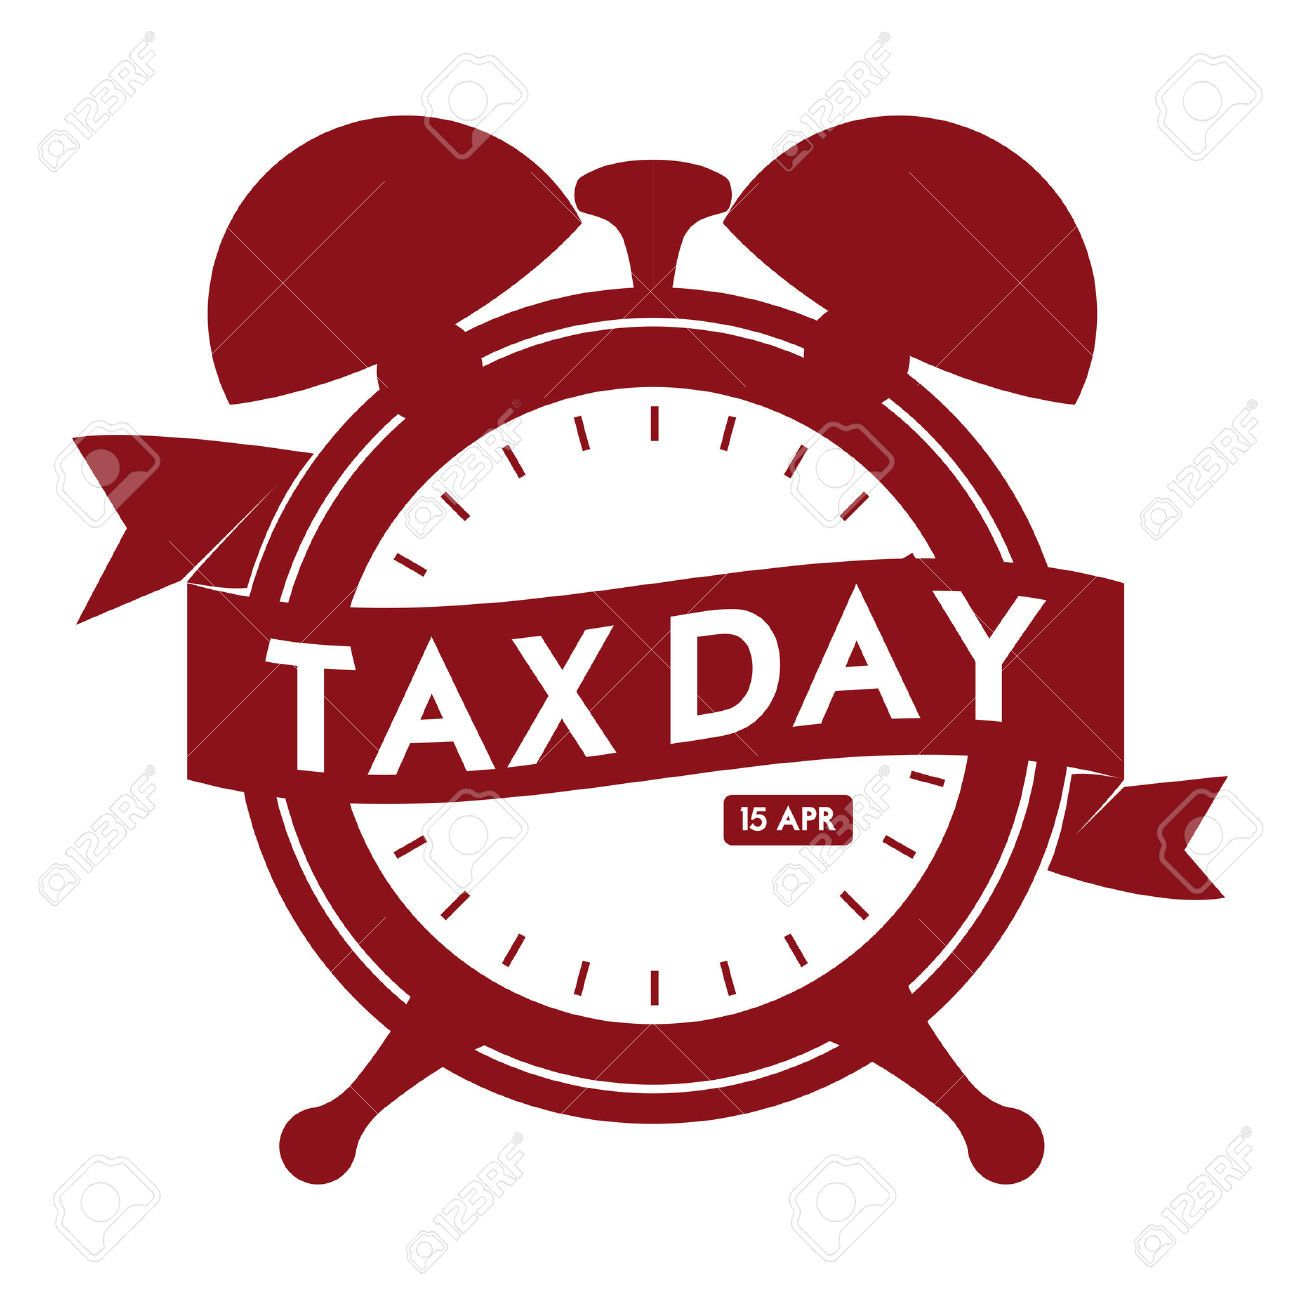 45+ Tax Day Clipart 2019